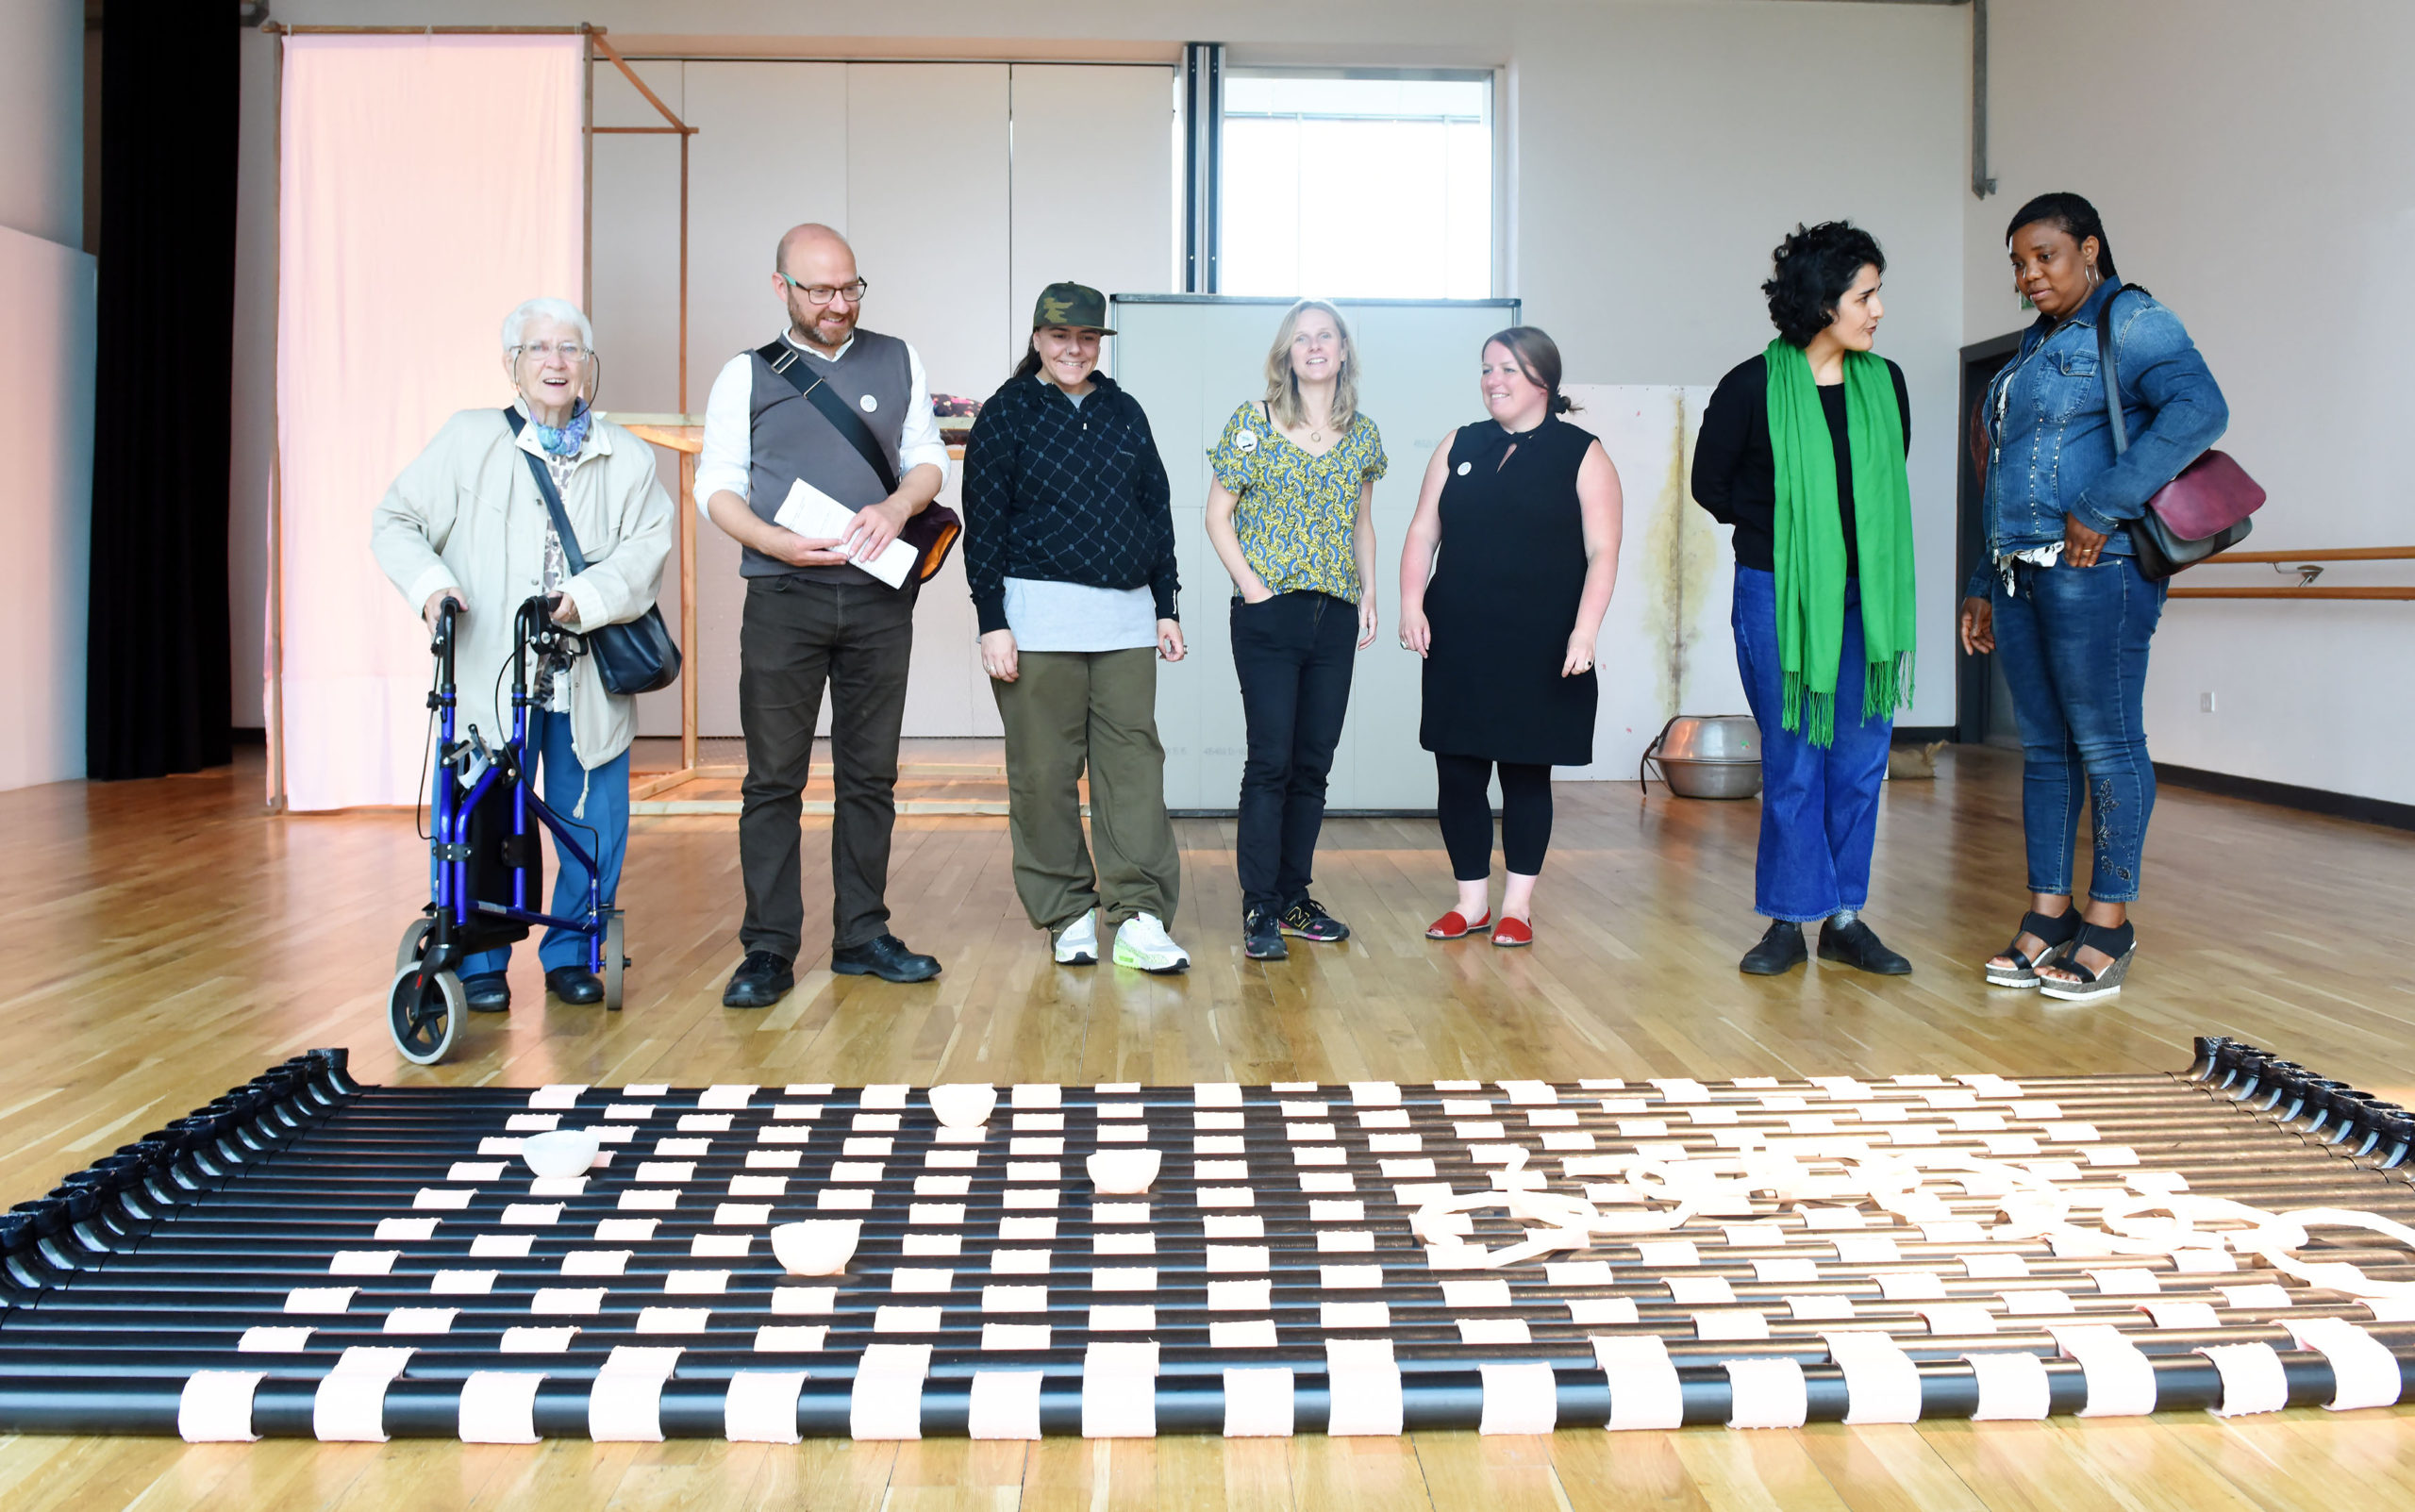 Patrick Harvie, Art in Action visit to Platform Easterhouse, August 2019